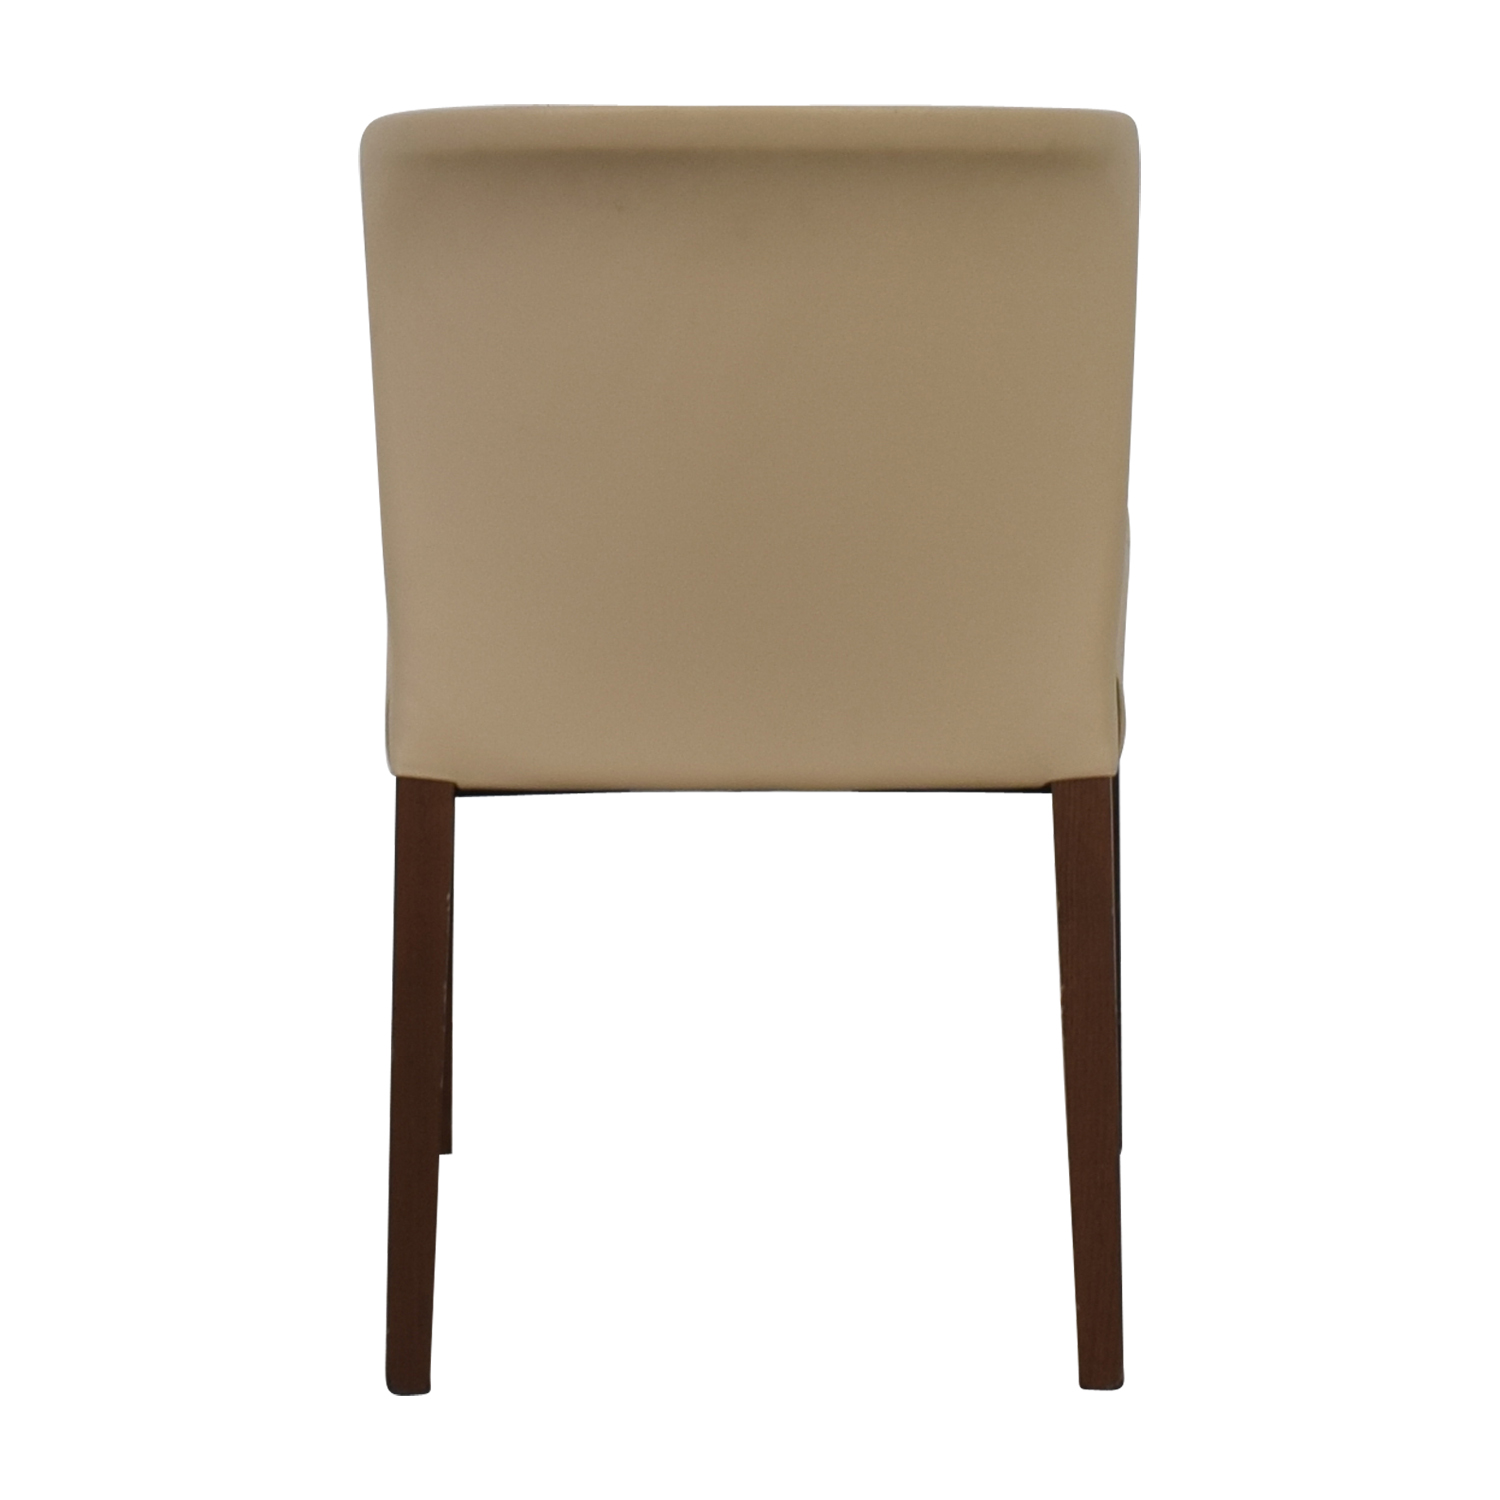 buy Crate & Barrel Beige Leather Chair Crate & Barrel